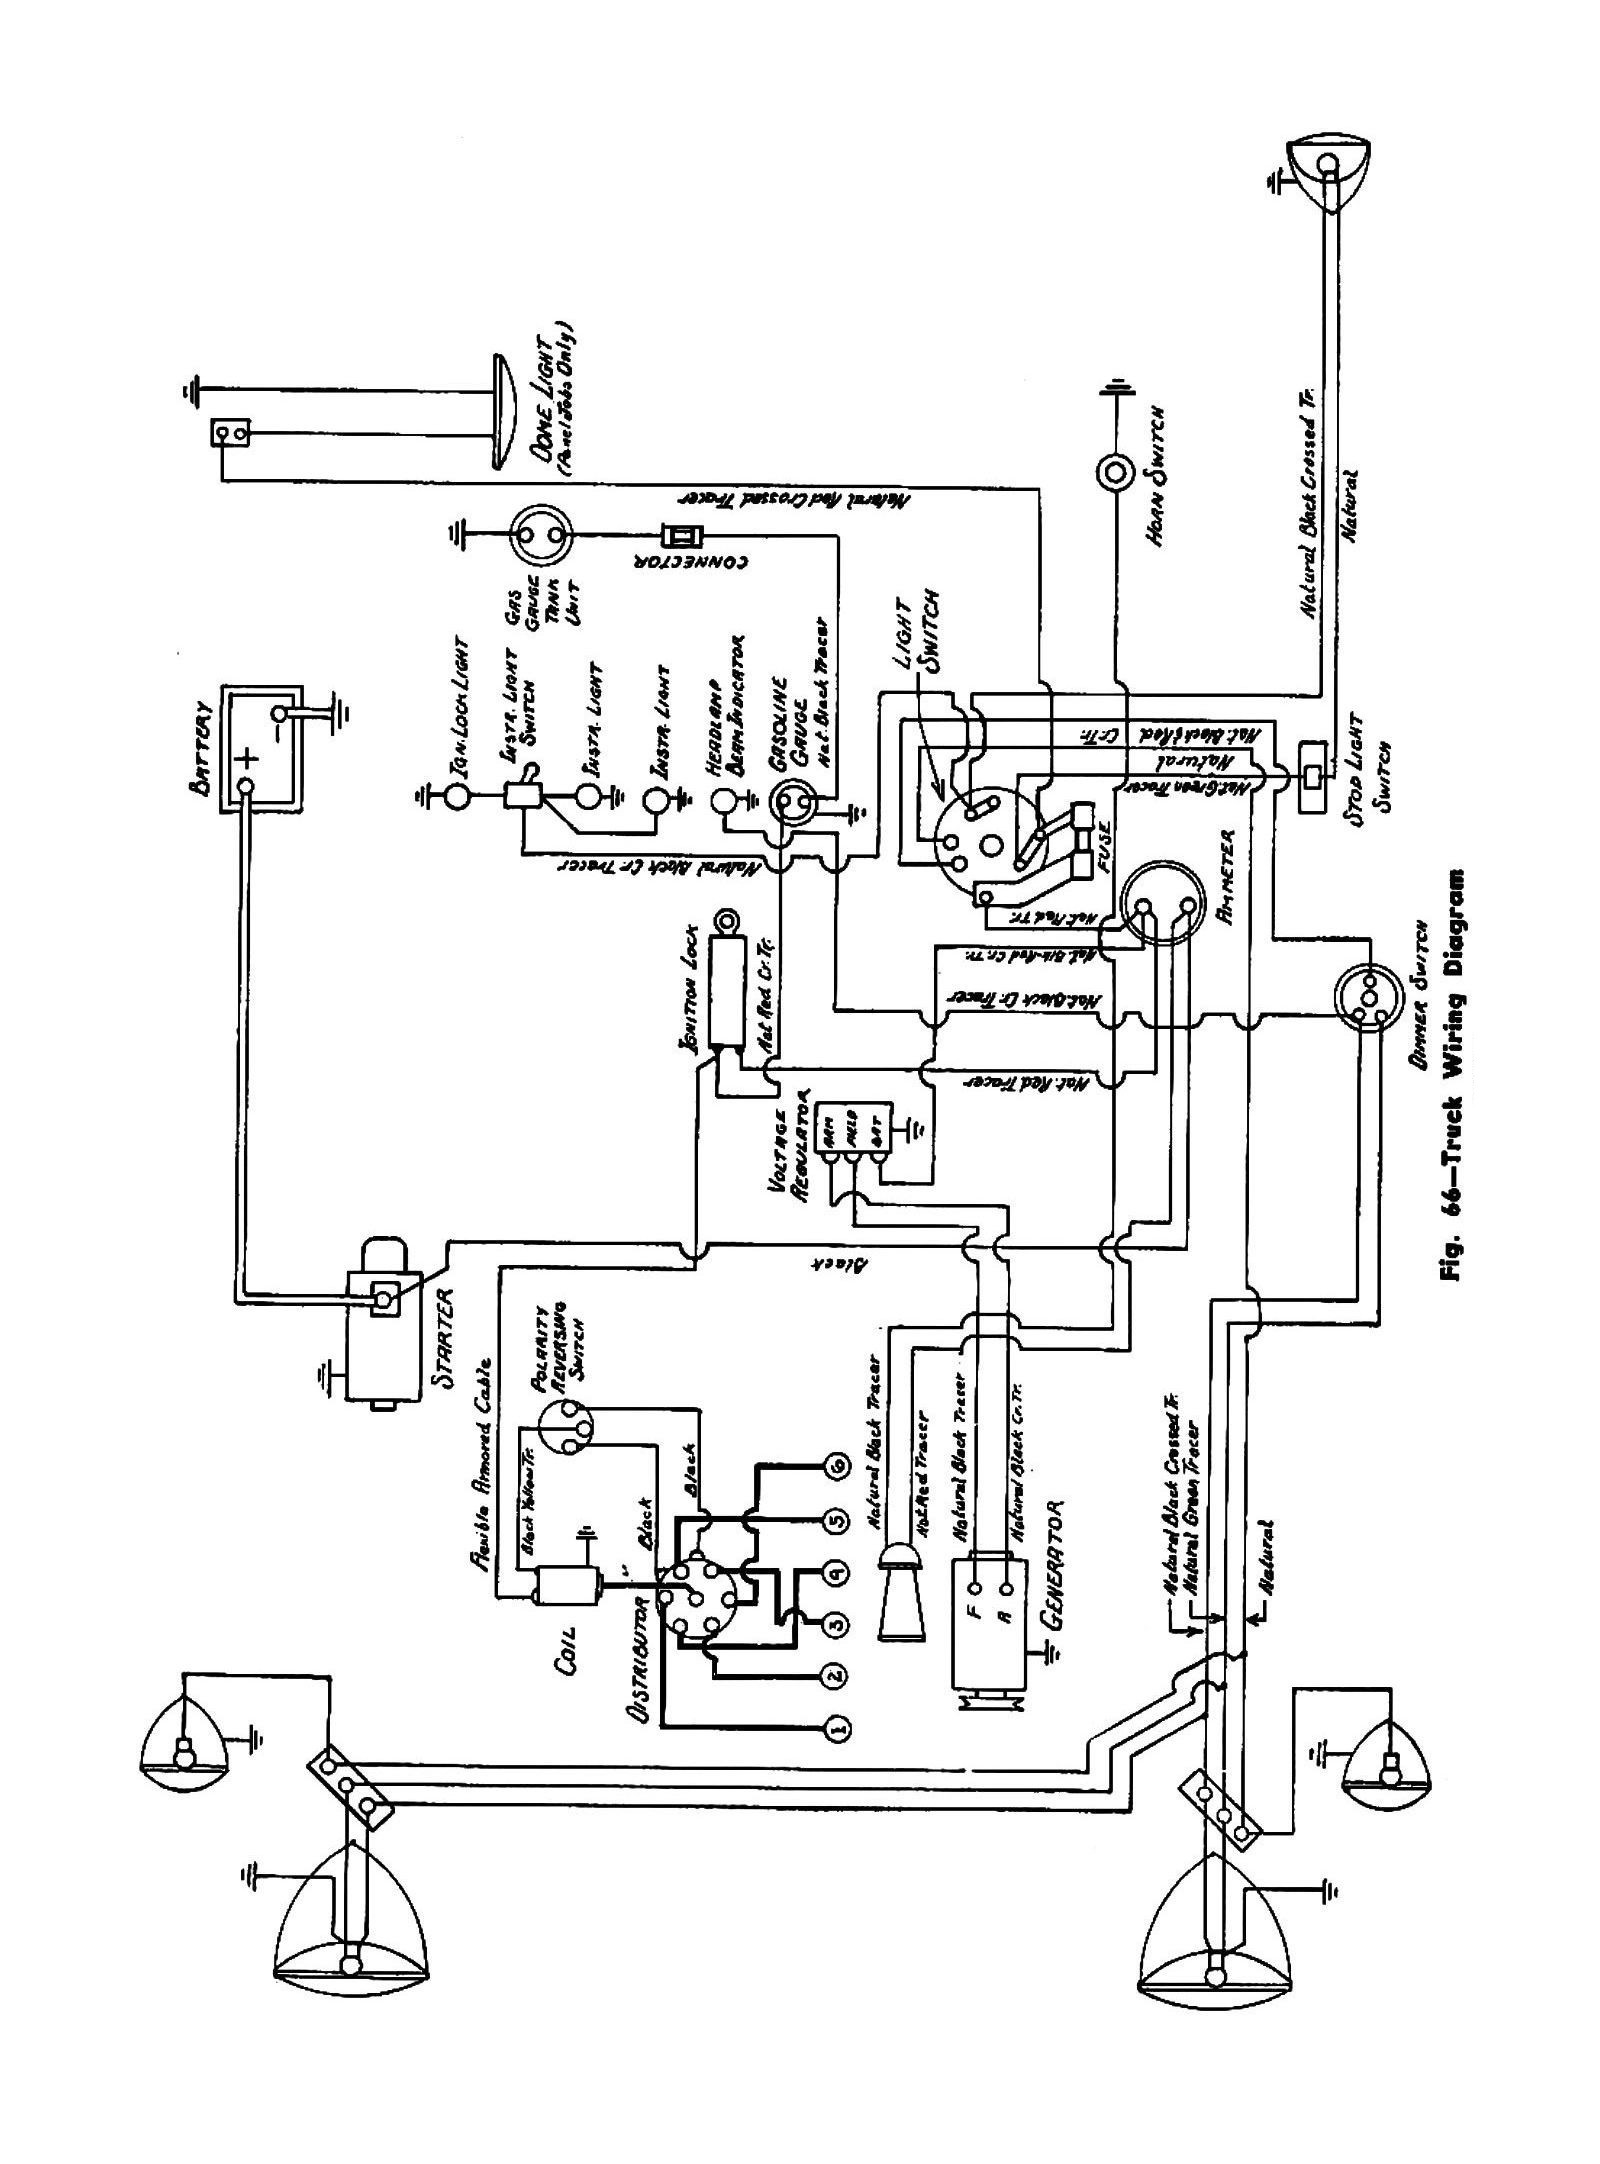 chevy truck fuse box diagram wiring diagram for home fuse